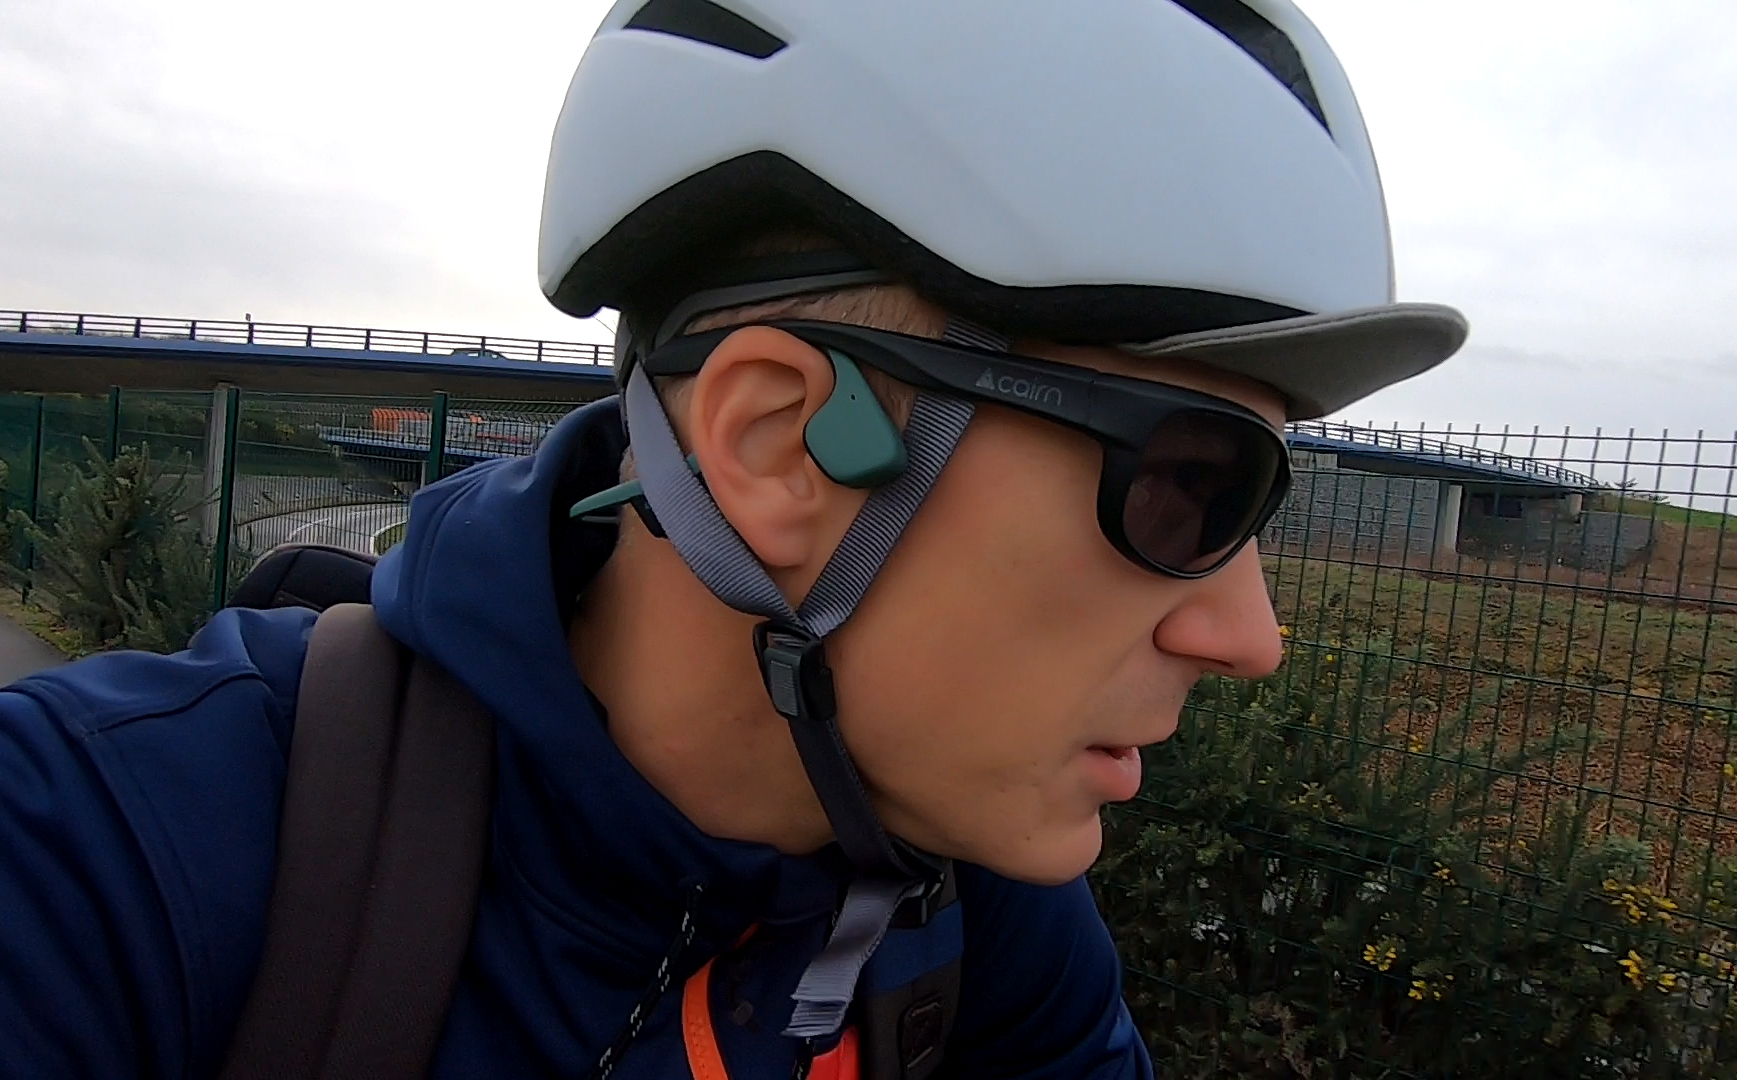 [Test] Aftershokz Trekz Air, le casque audio à conduction osseuse